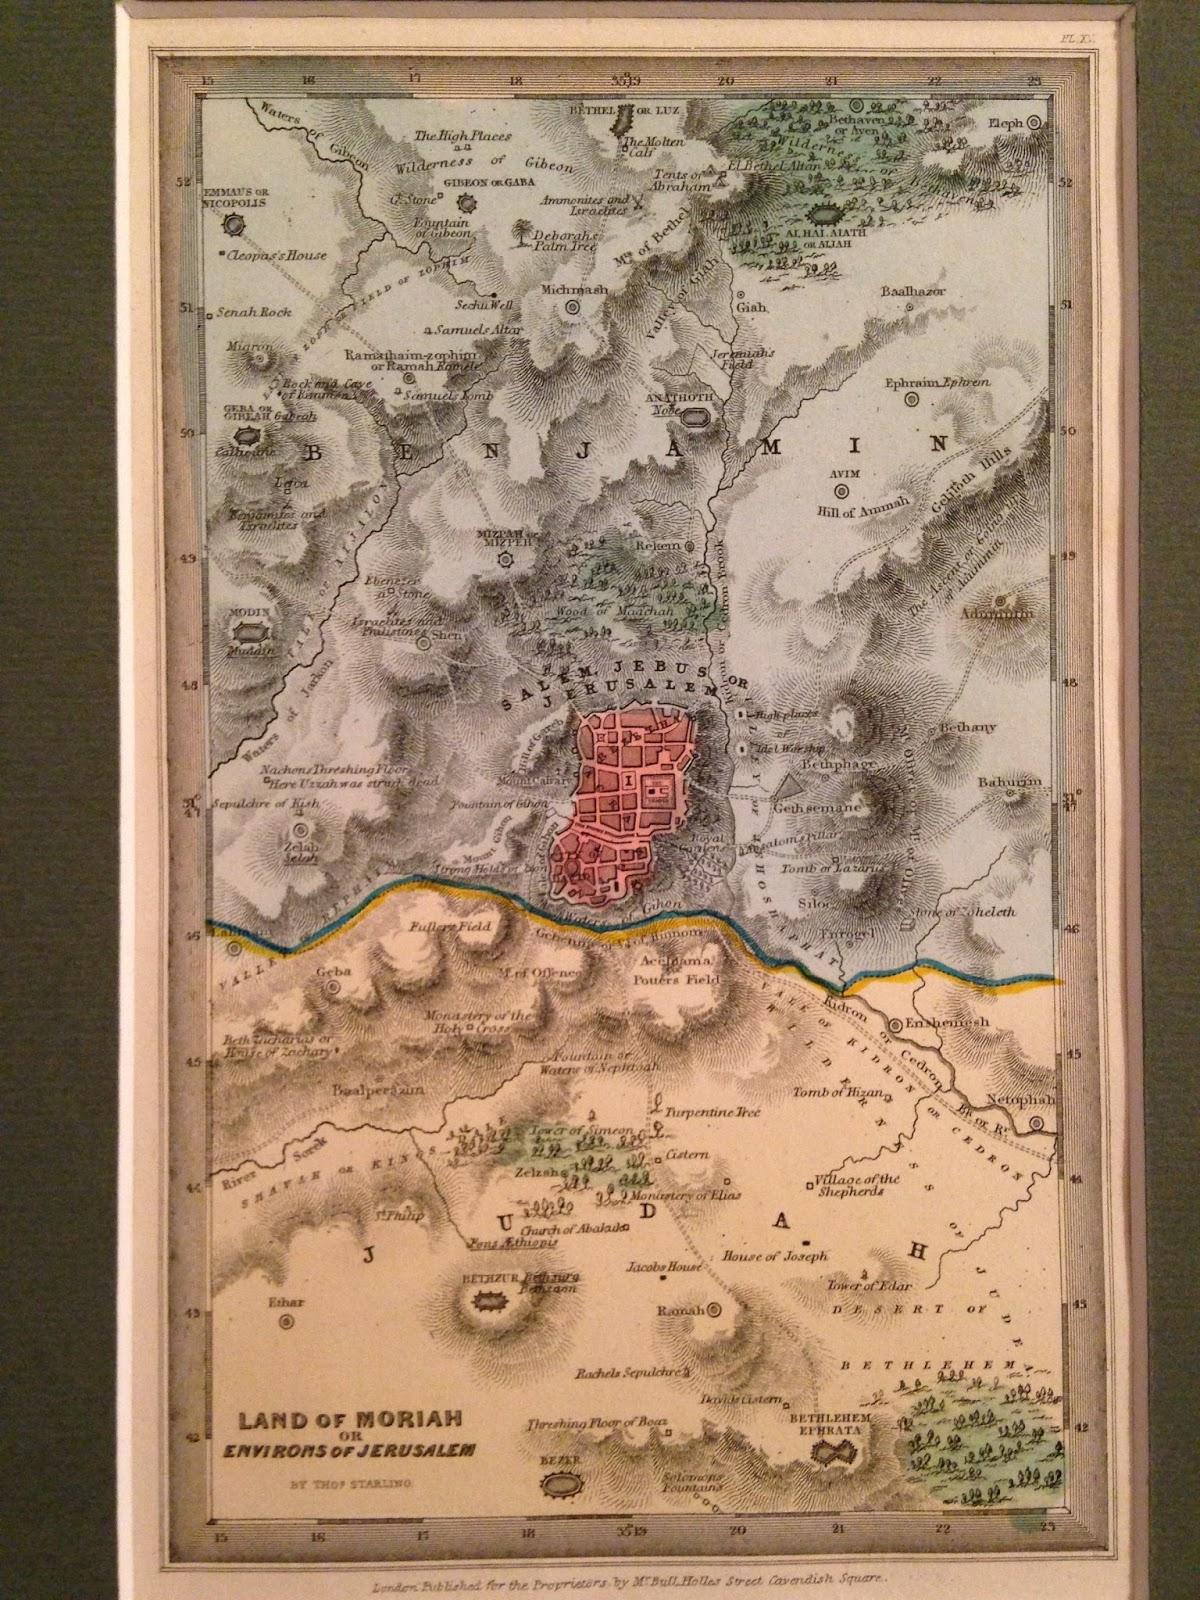 the map is titled land of moriah or environs of jerusalem the map maker is thomas starling and printed at the bottom is london published for the